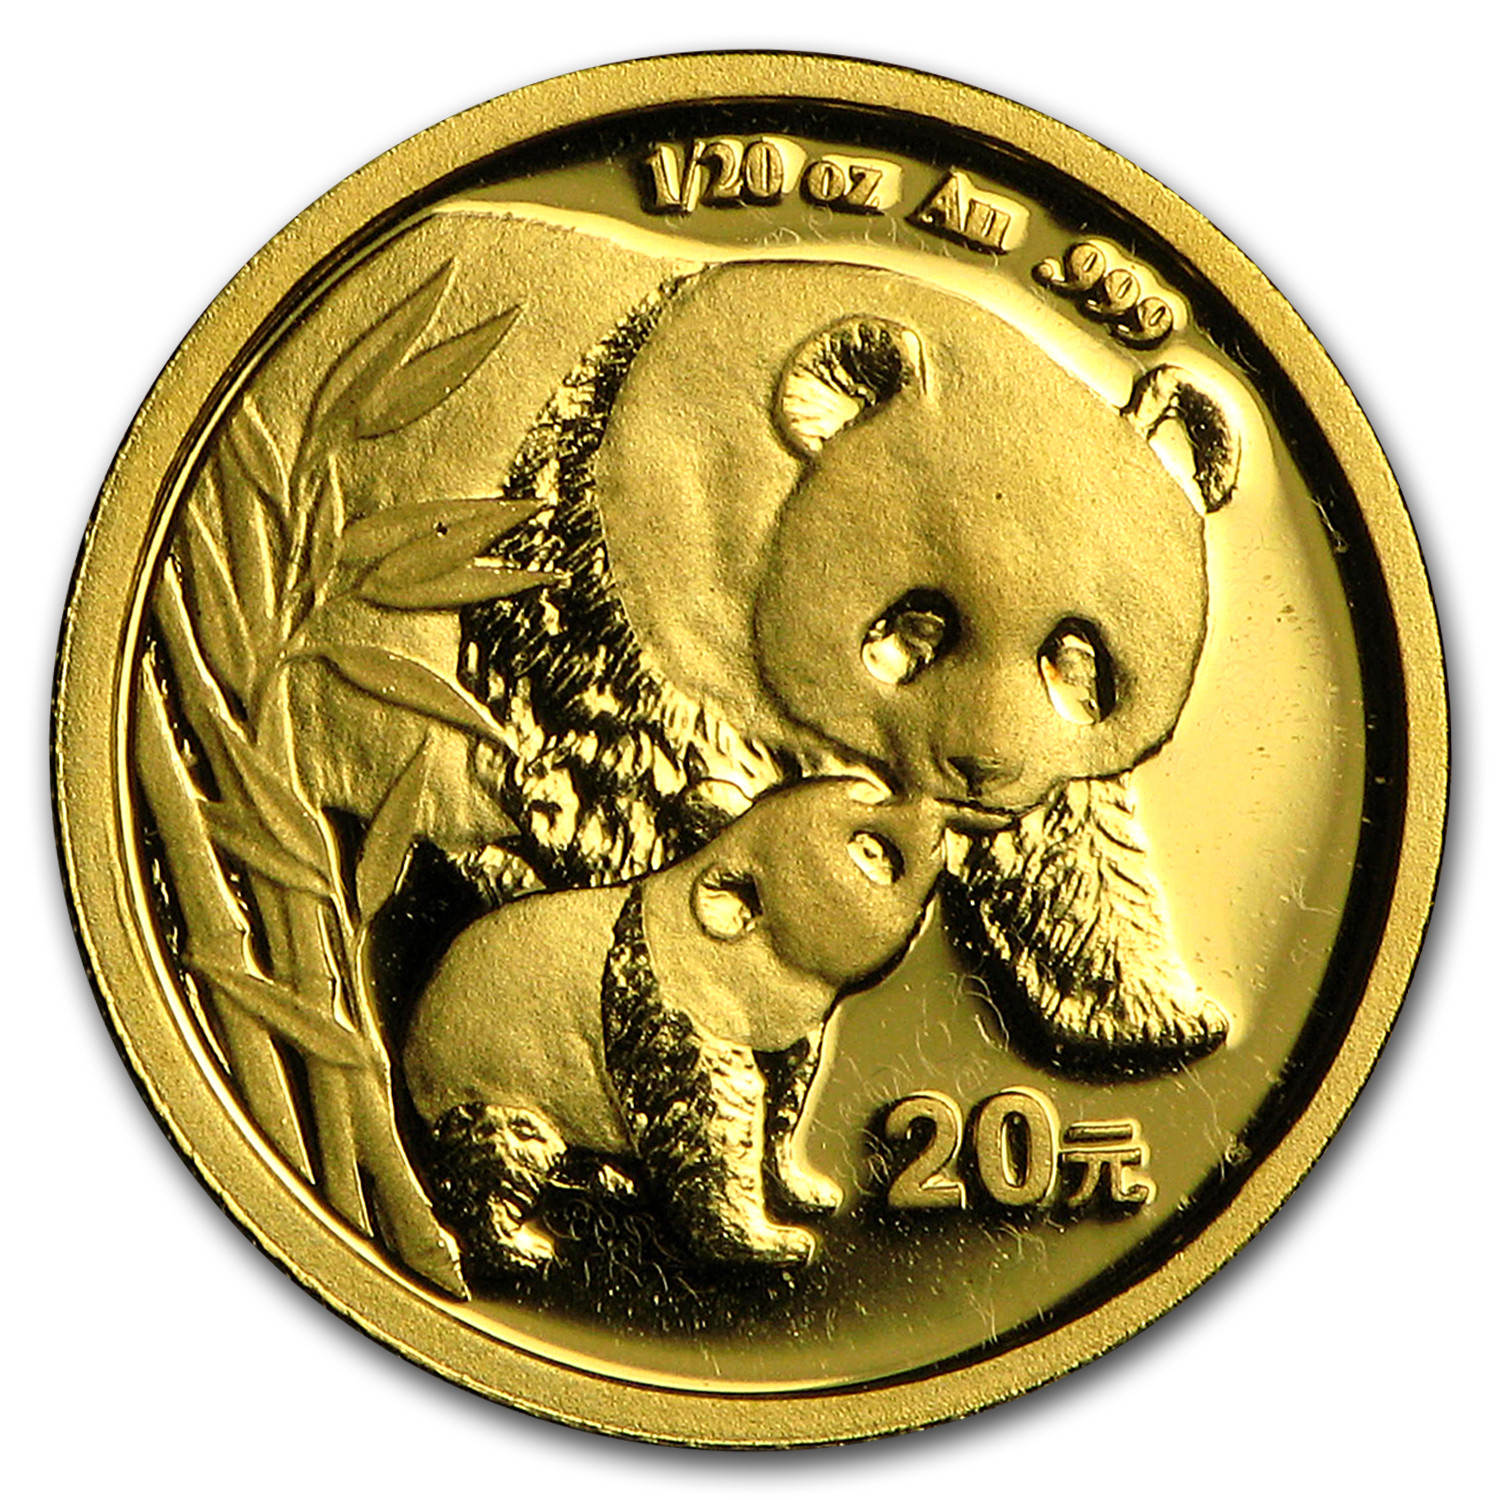 2004 China 1/20 oz Gold Panda BU (Not Sealed)